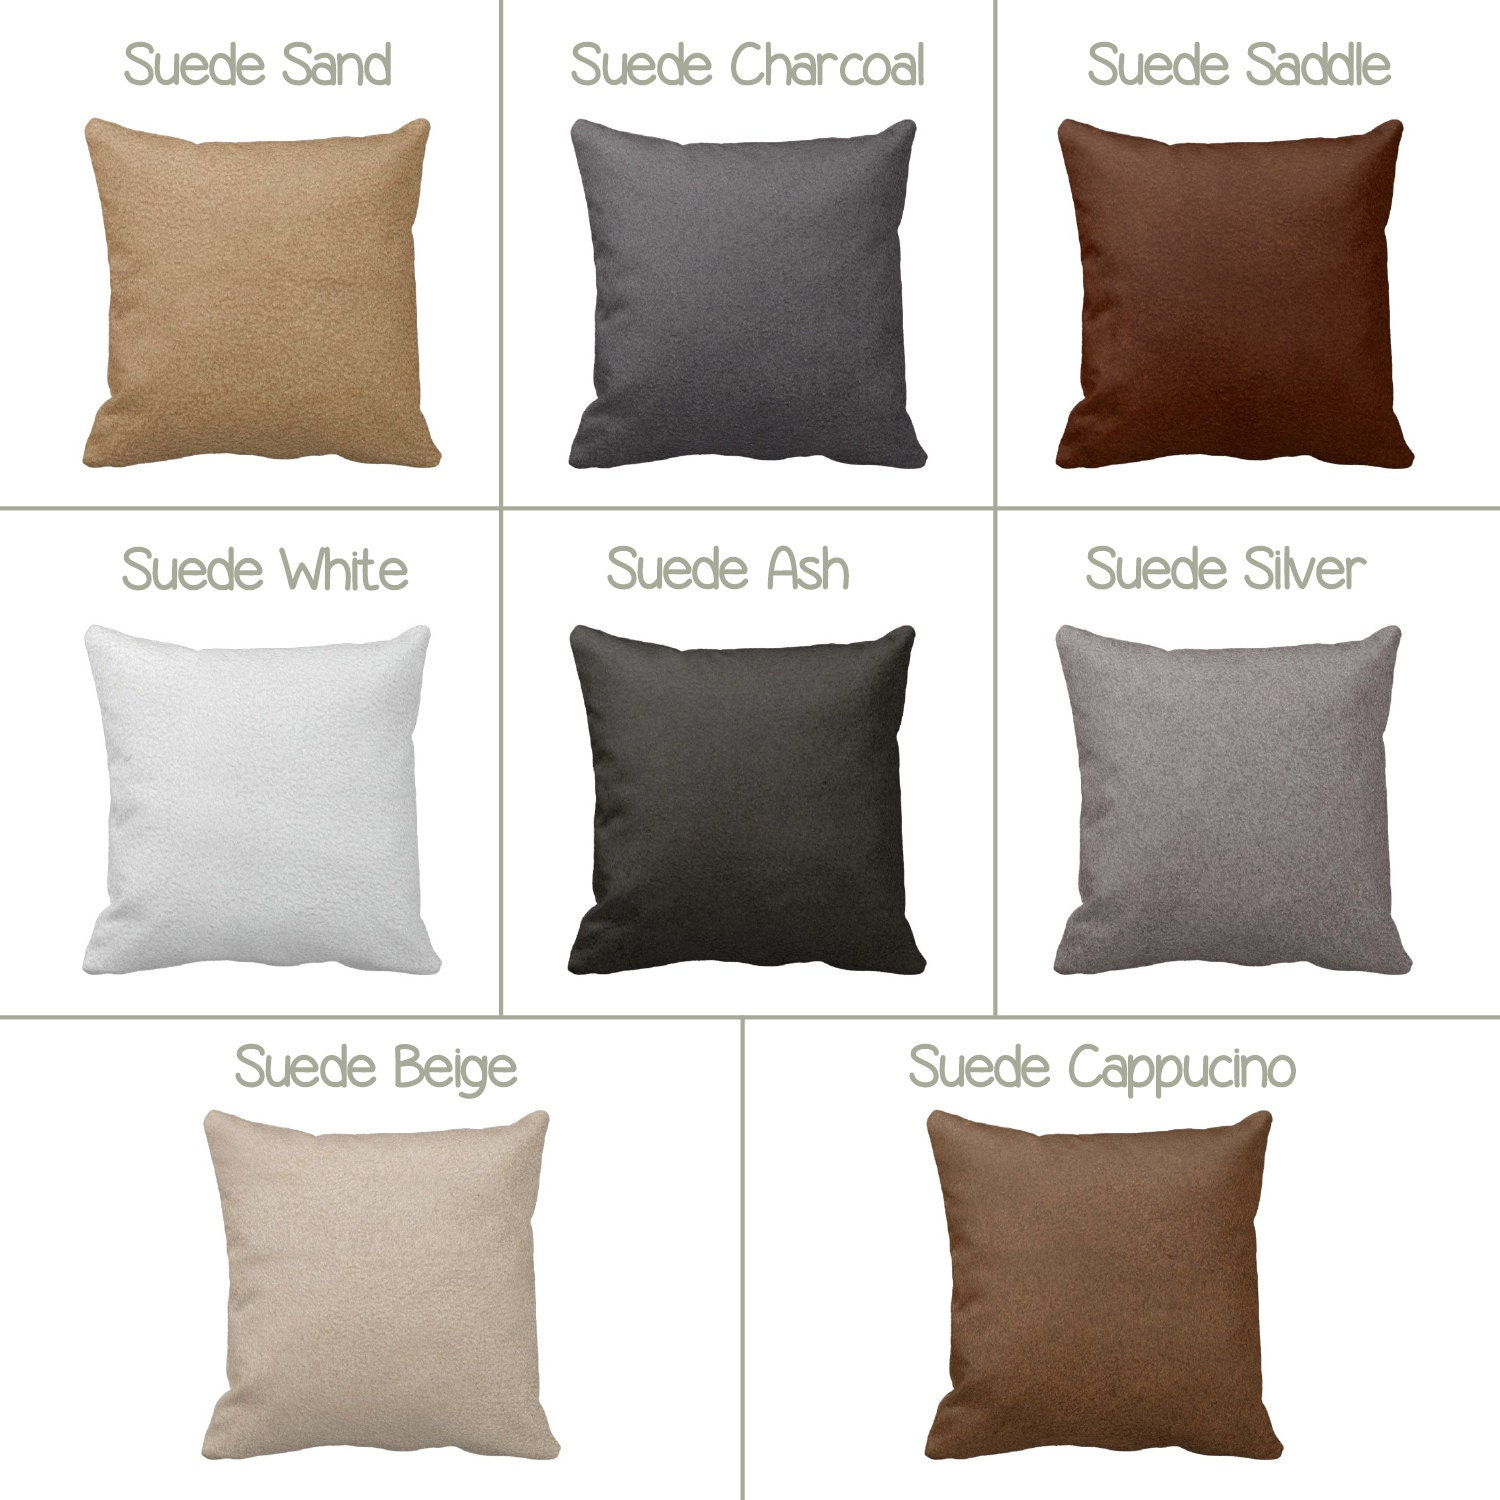 How To Make Zippered Throw Pillow Covers : Suede Zippered Throw Pillow Cover by Primal Vogue Various